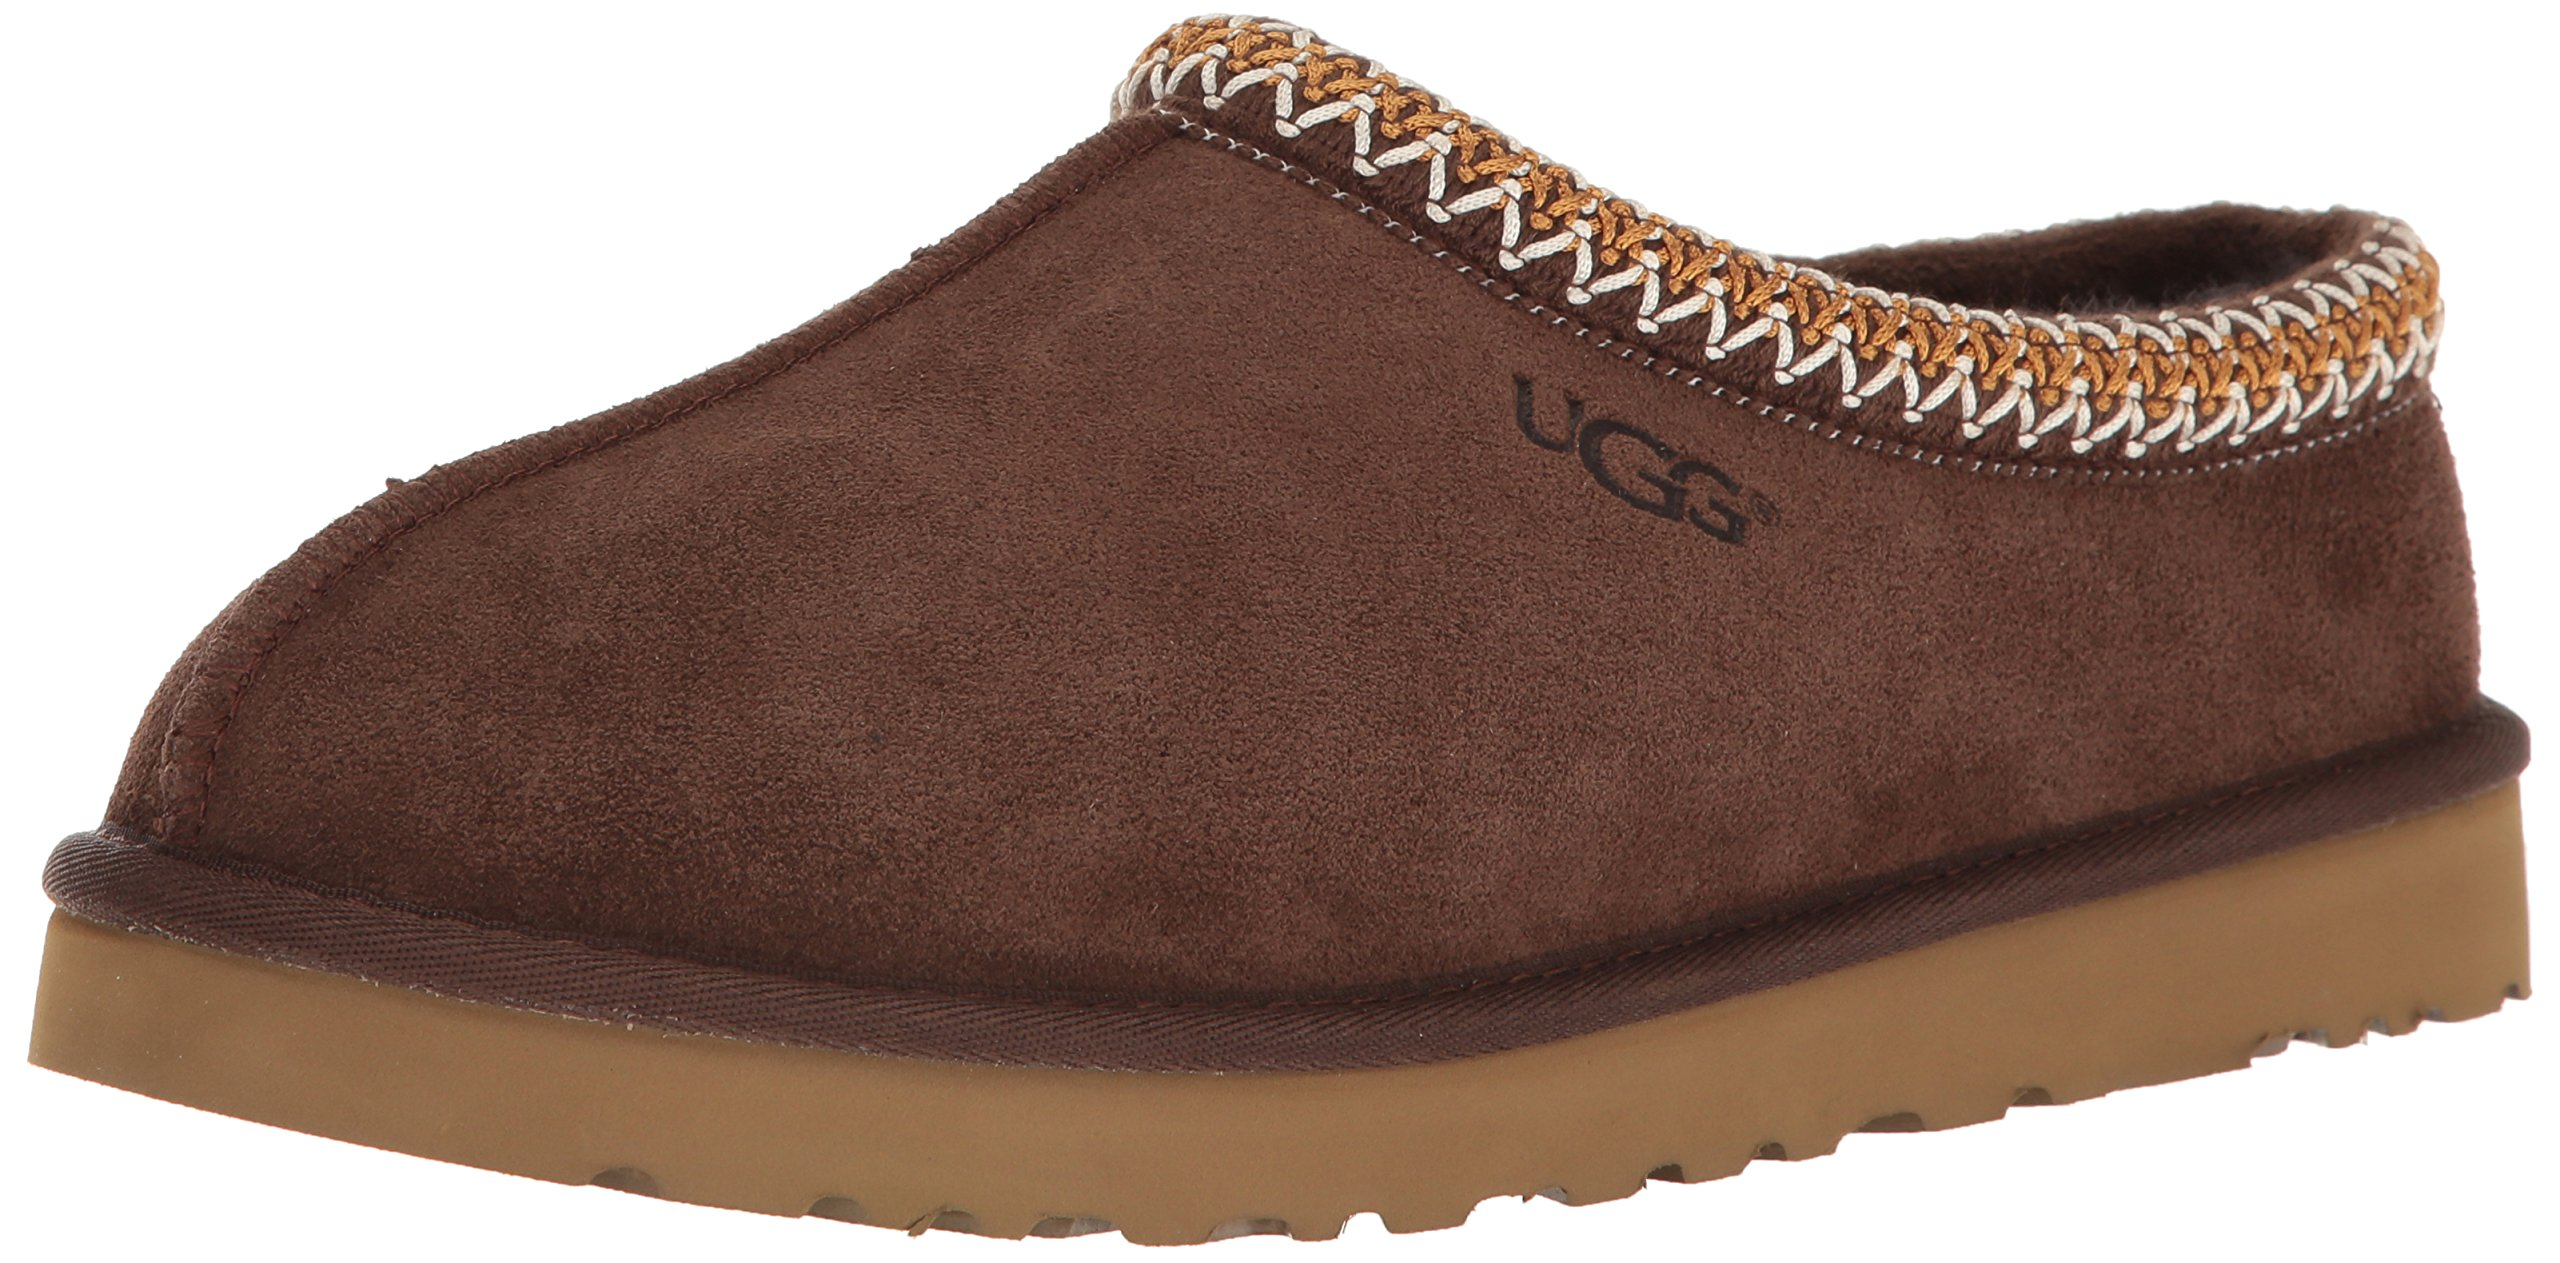 UGG Australia Men's Tasman Chocolate Suede Slippers - 10 D(M) US